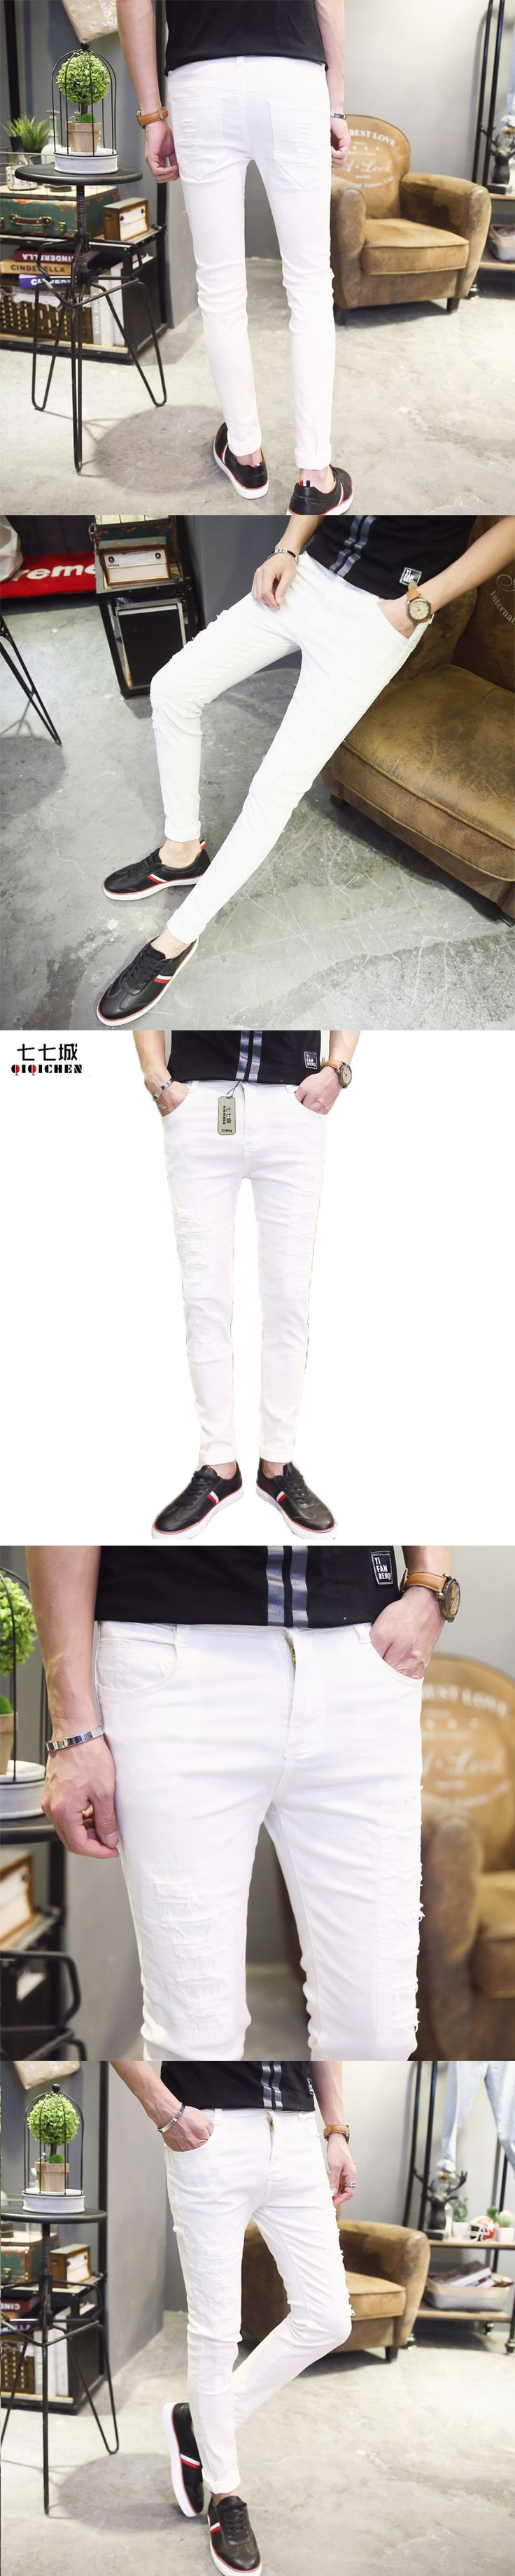 2017 New Fashion Holes White Ripped Jeans for Men Casual Pants Slim Fit Cotton Stretch Pencil Skinny Pants Men Long Trousers